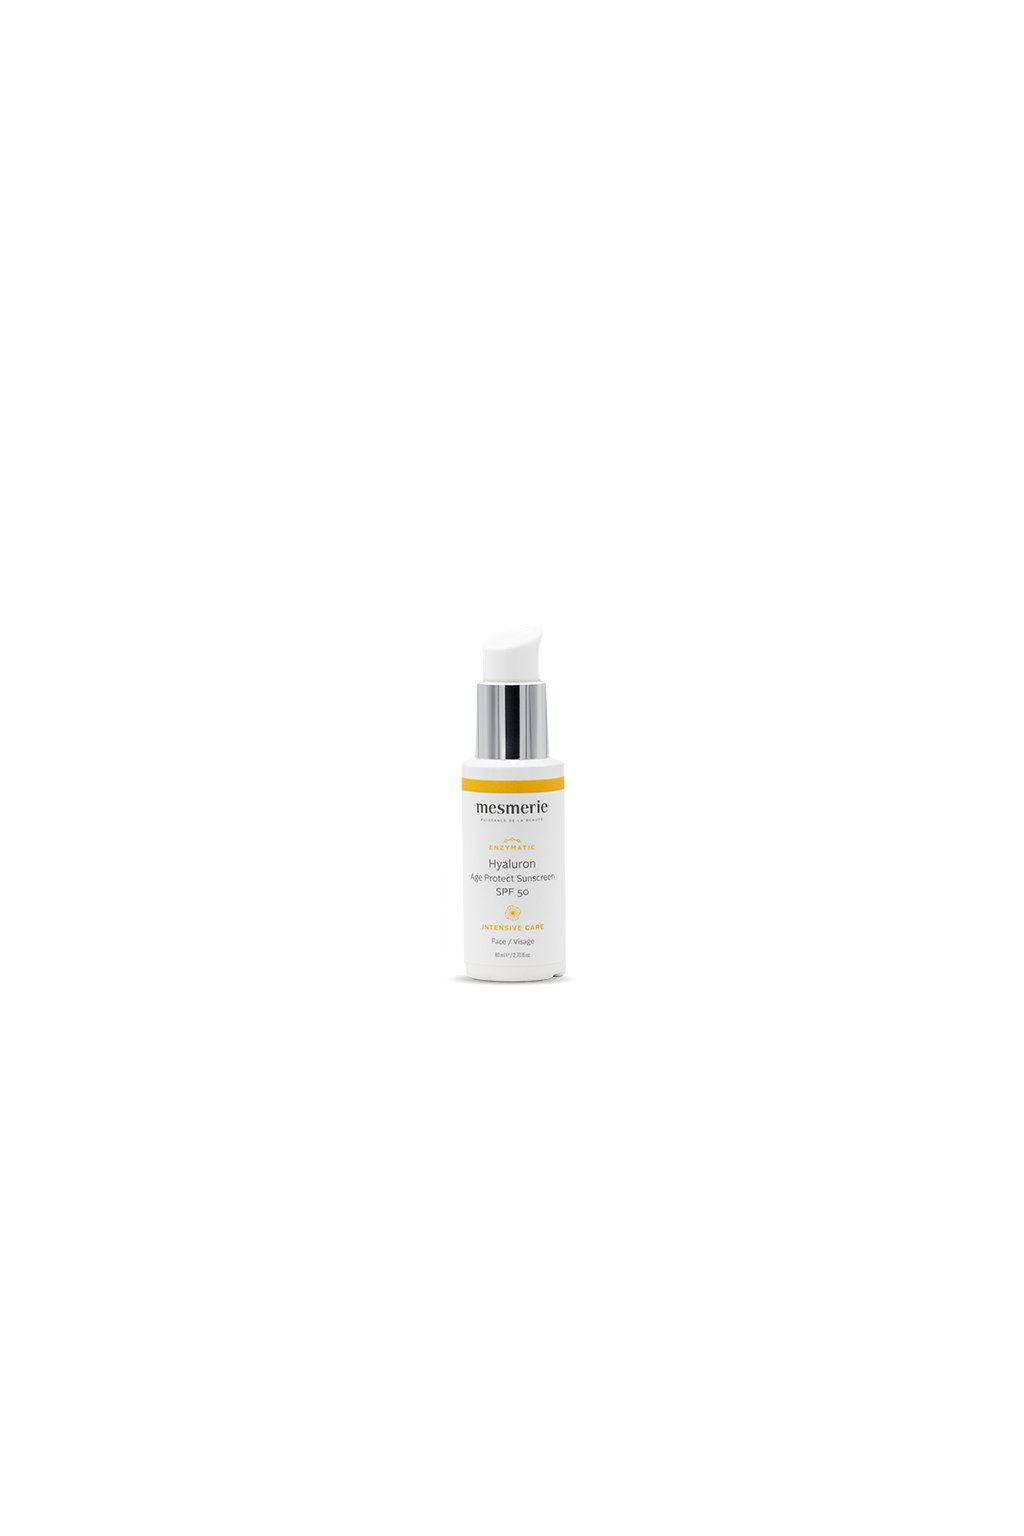 hyaluron age protect sunscreen spf 50